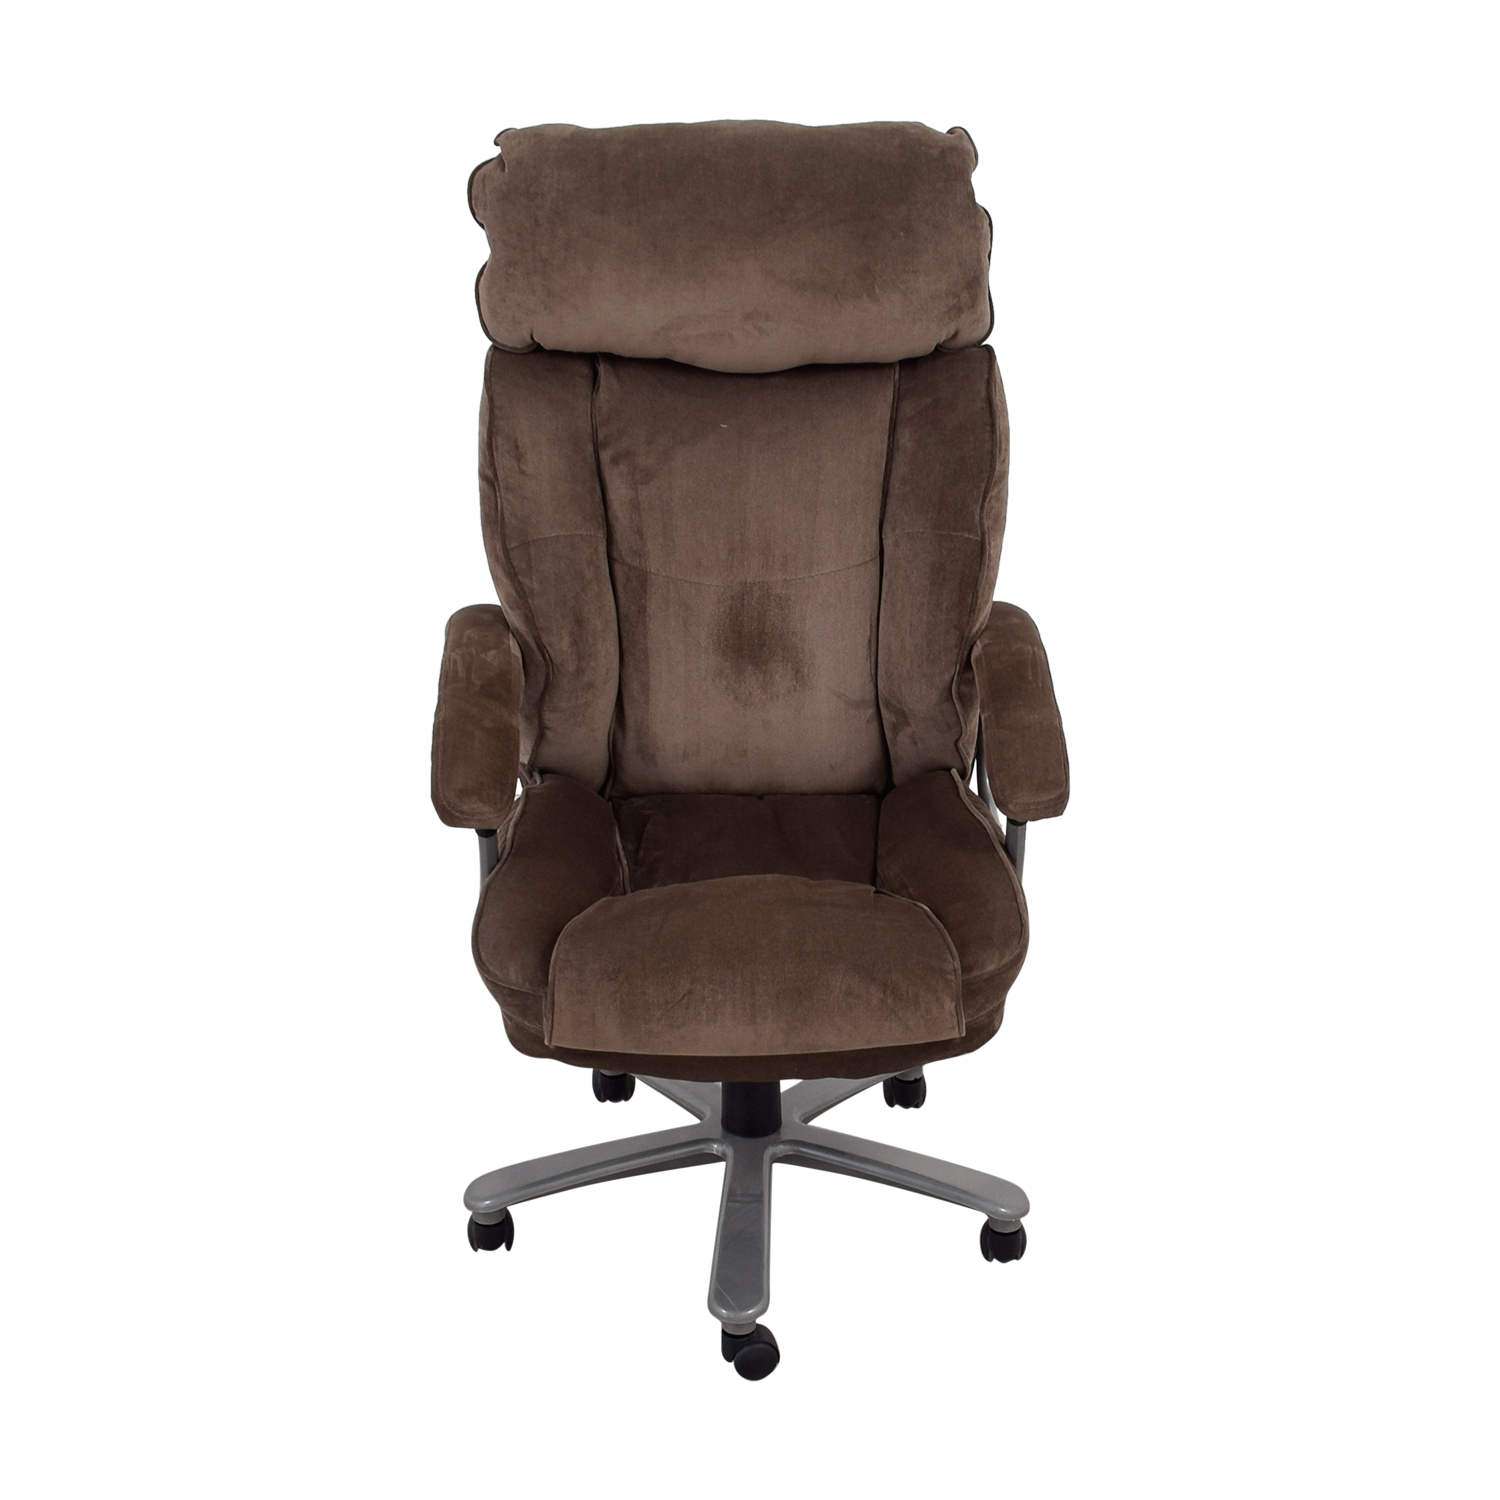 Home Depot Office Chairs: Office Depot Office Depot Grey Office Chair / Chairs